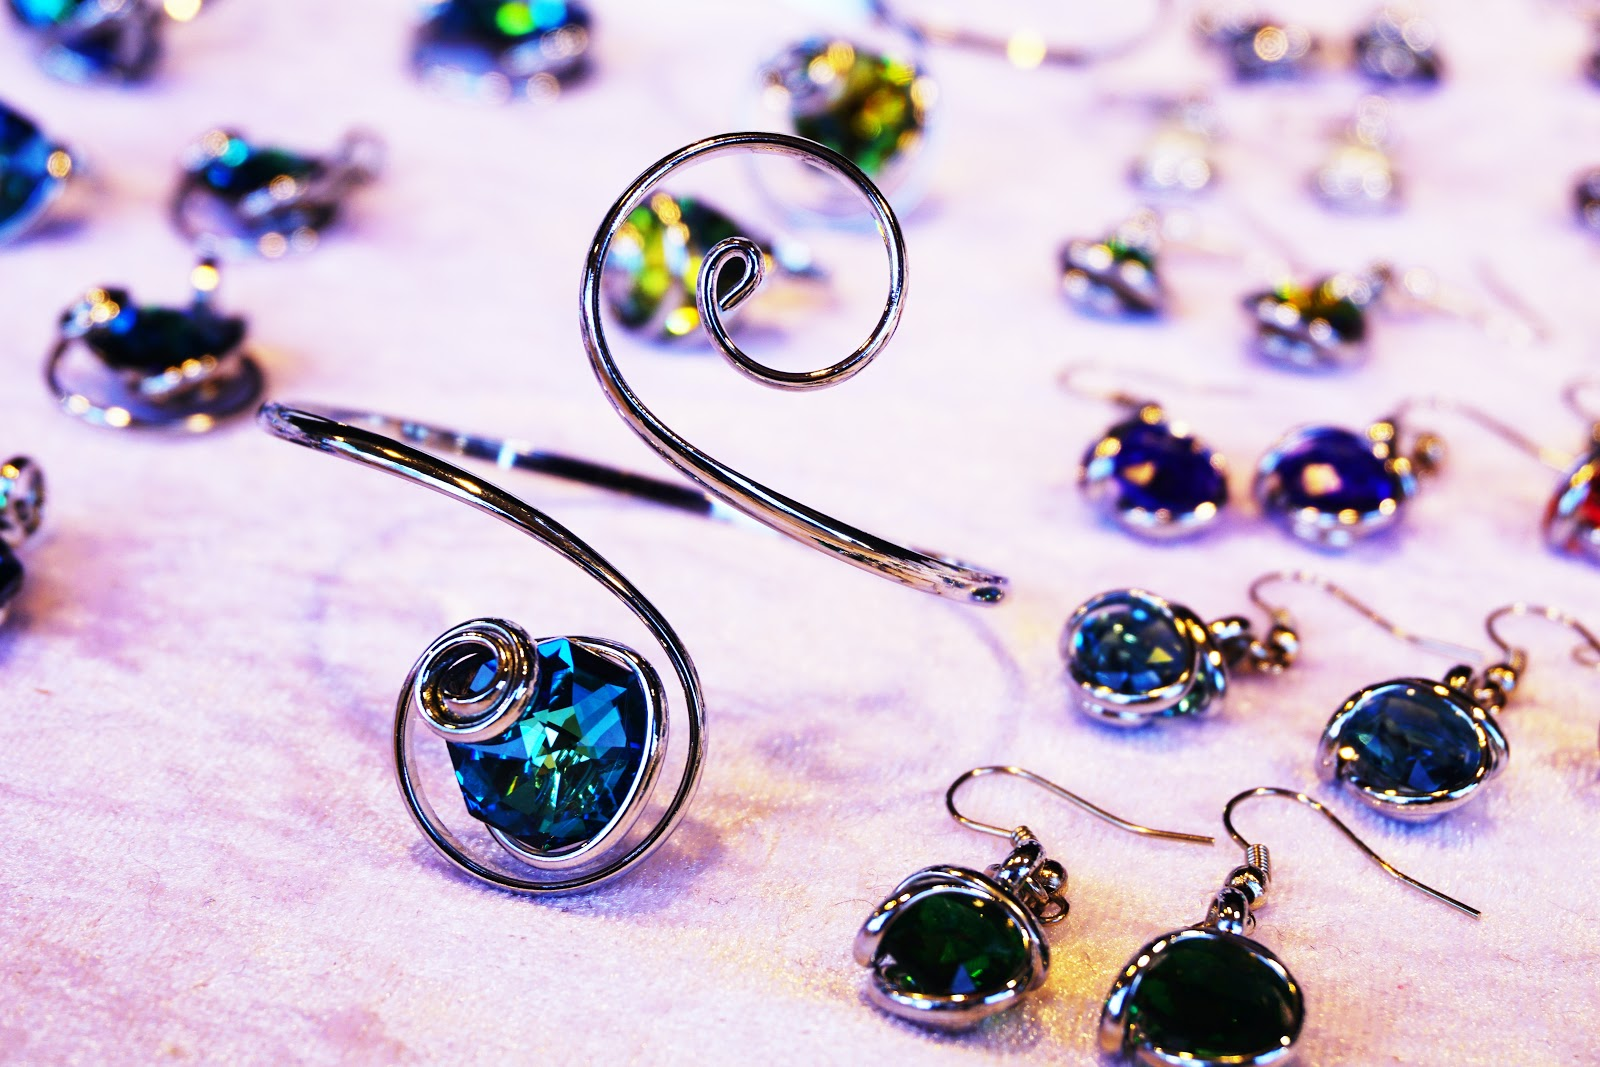 multiple different types of earrings surrounding one large ring with a blue stone